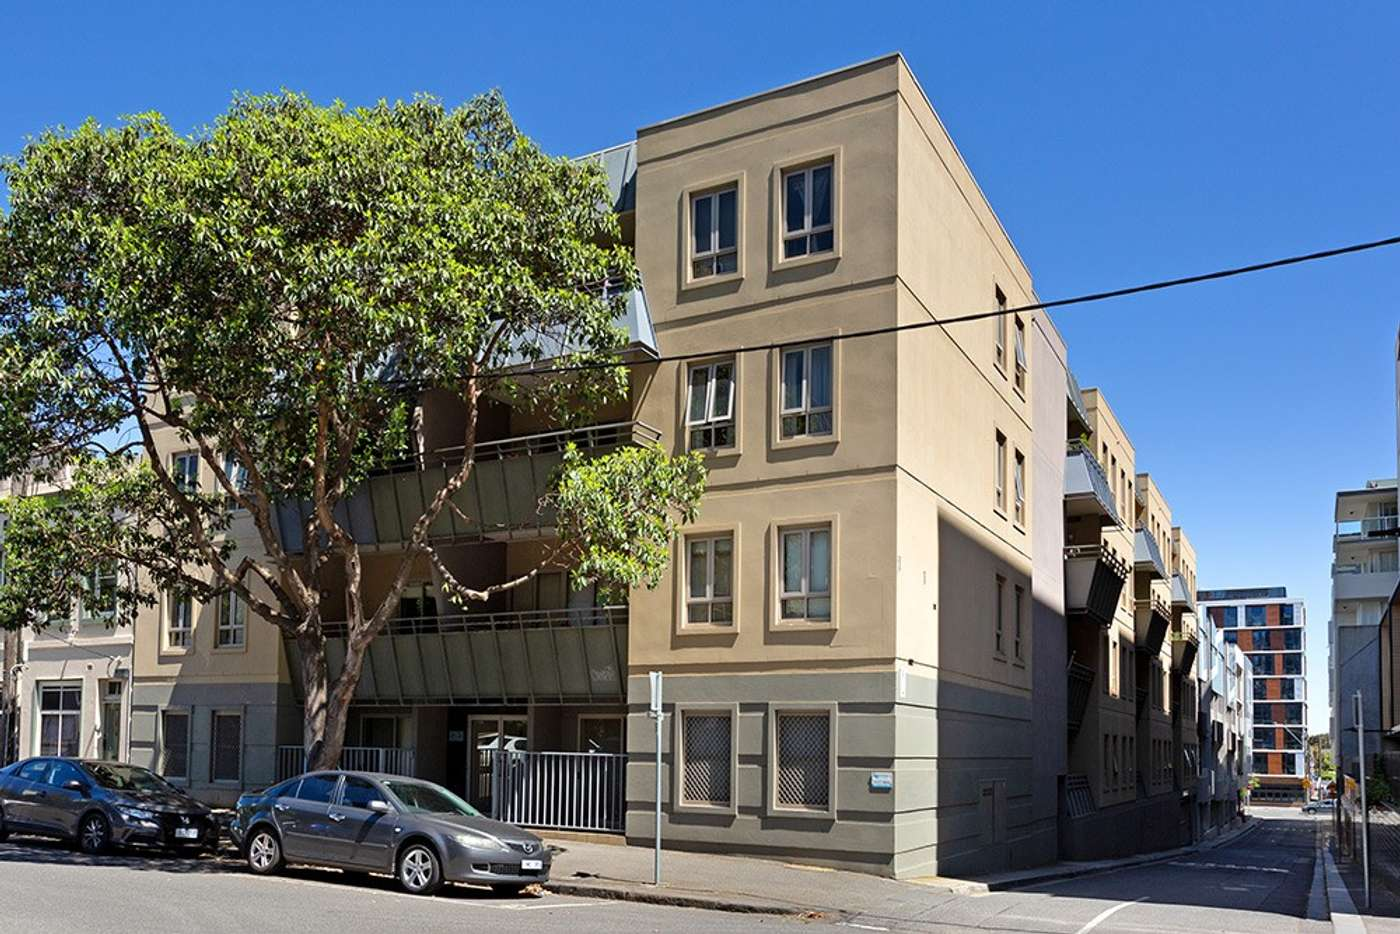 Main view of Homely apartment listing, 28/17-21 Blackwood Street, North Melbourne VIC 3051